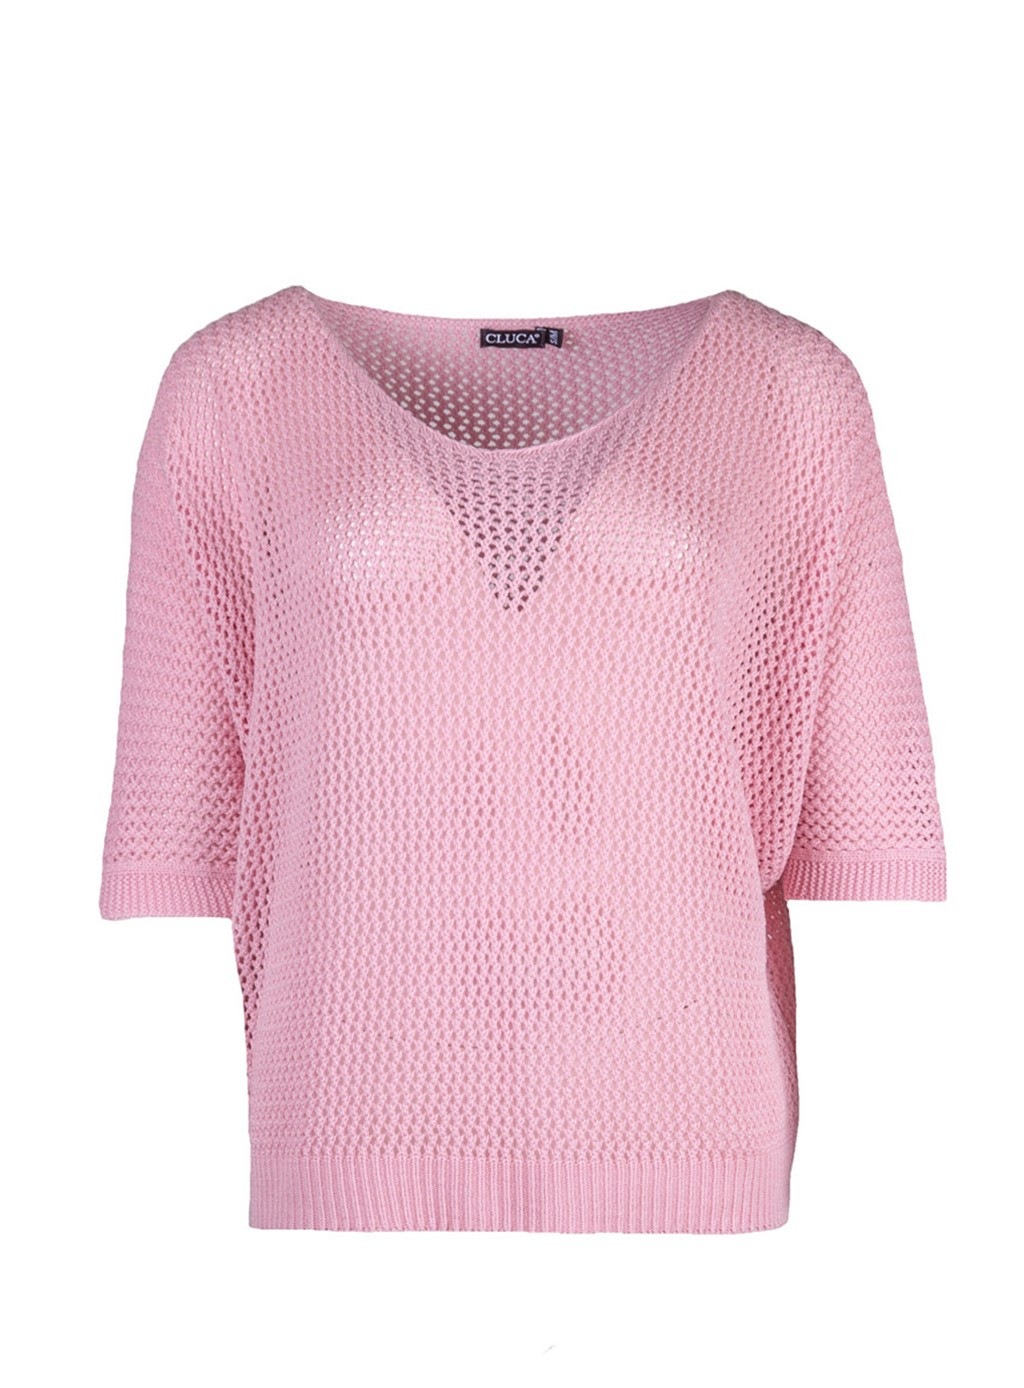 Sweater Liscate Pink